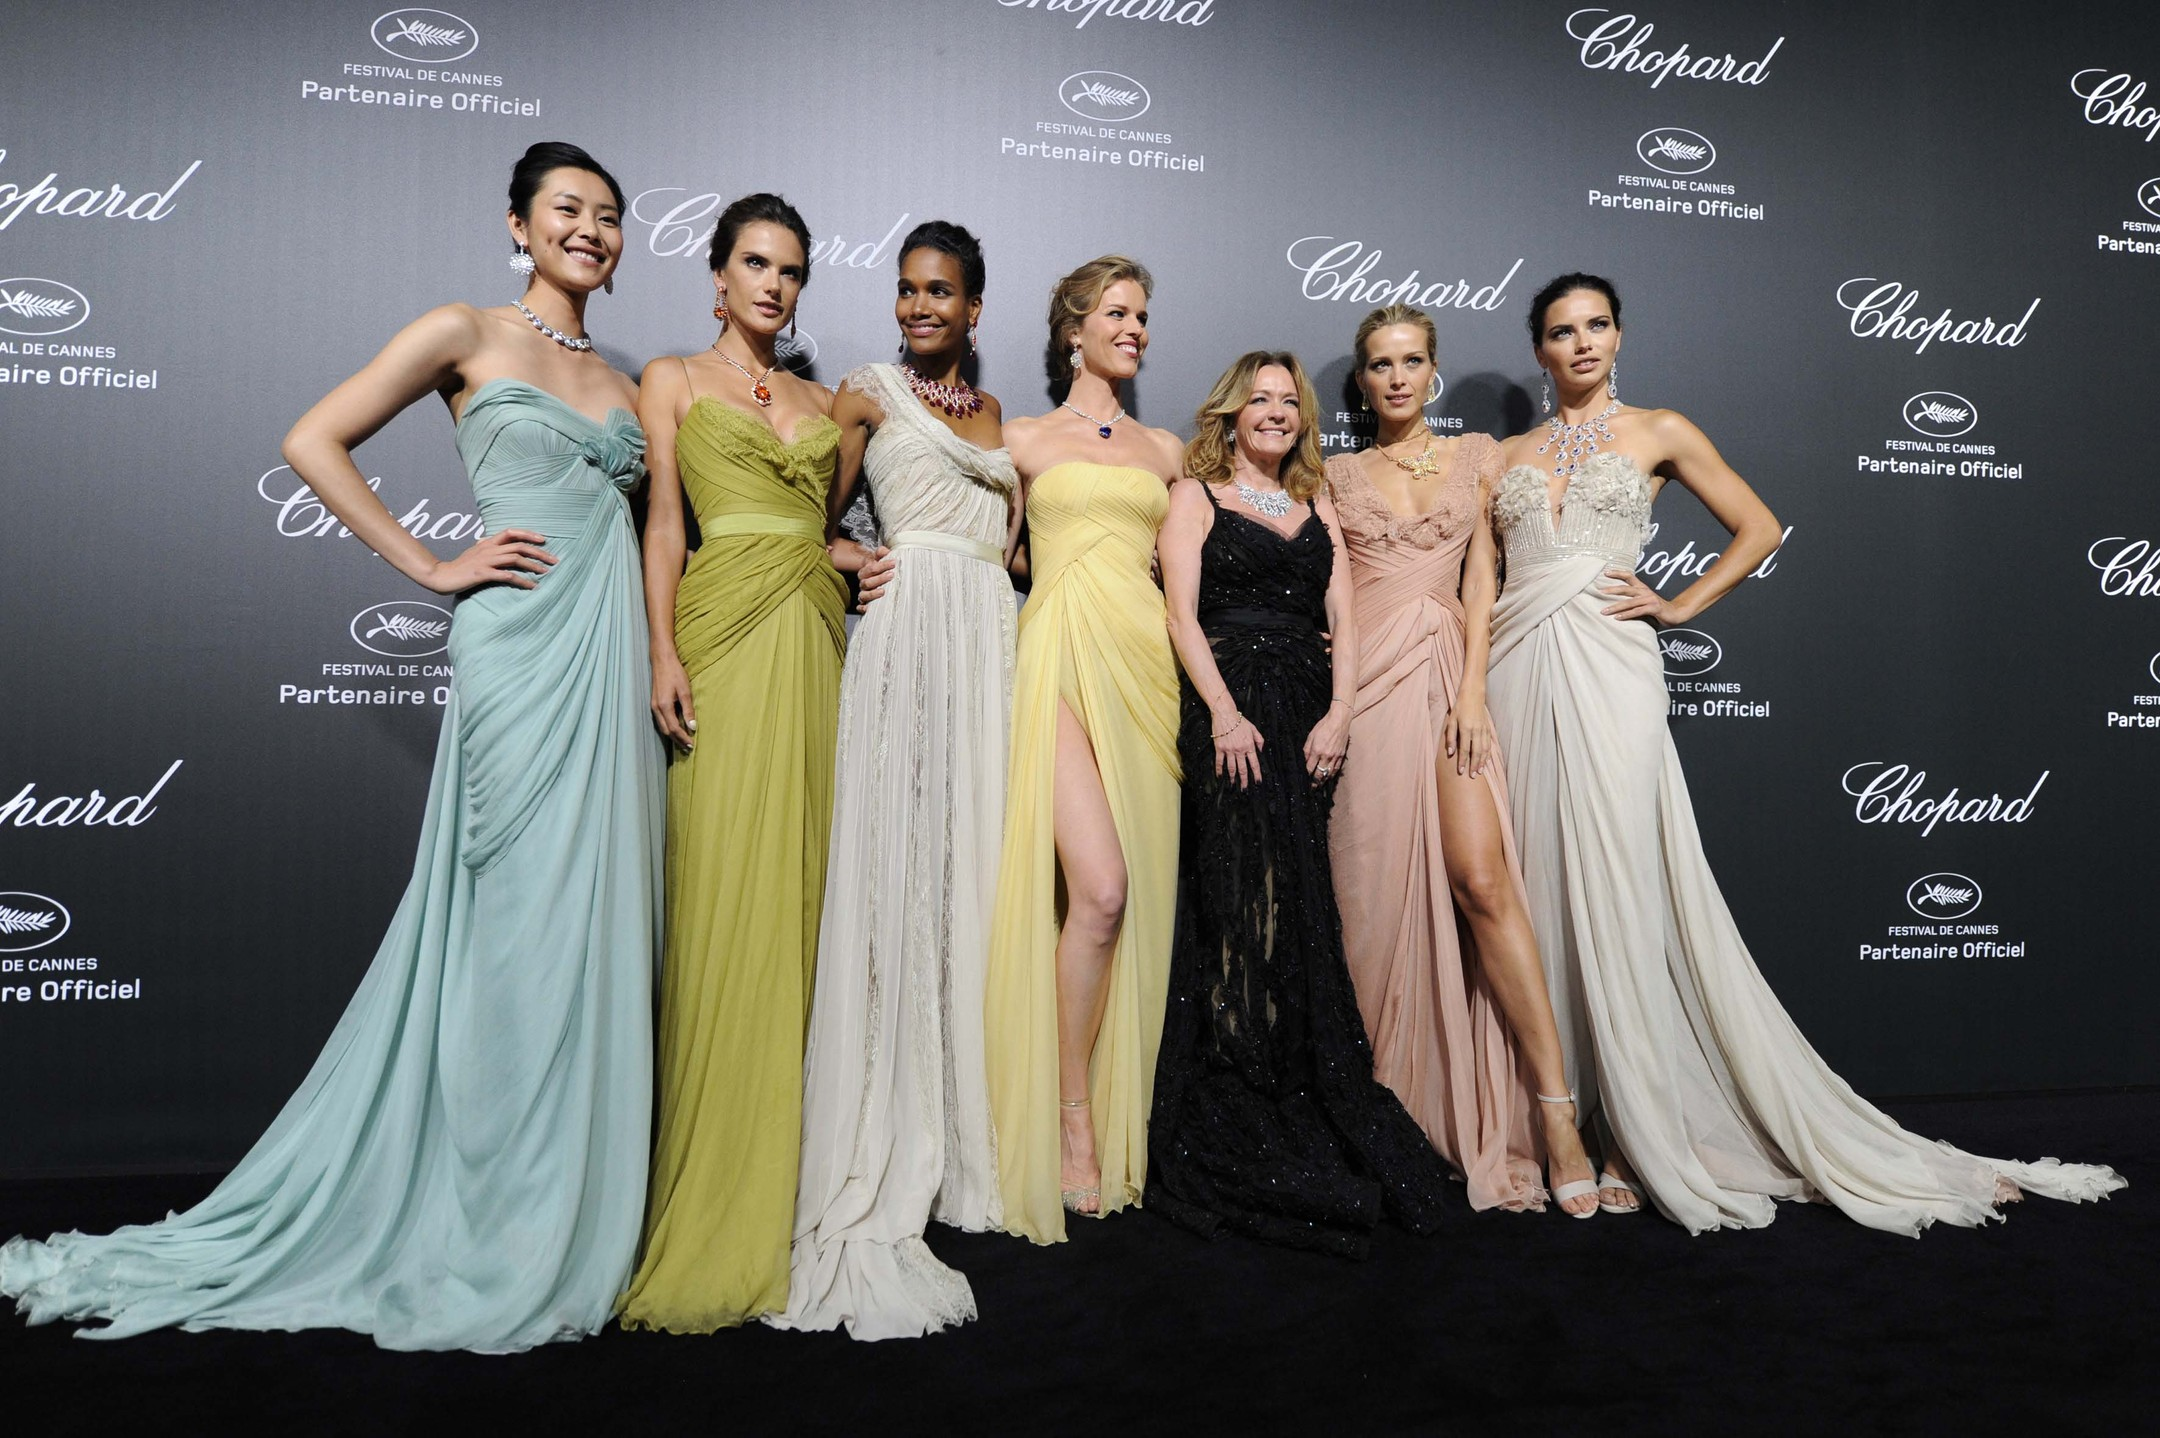 Supermodels Liu Wen, Alessandra Ambrosio, Arlenis Sosa, Eva Herzigova, Petra Nemcova and Adriana Lima lined up either side of Caroline Scheufele, co president of Chopard - dressed in black - at the Swiss jeweller's exclusive Backstage party wearing Elie S